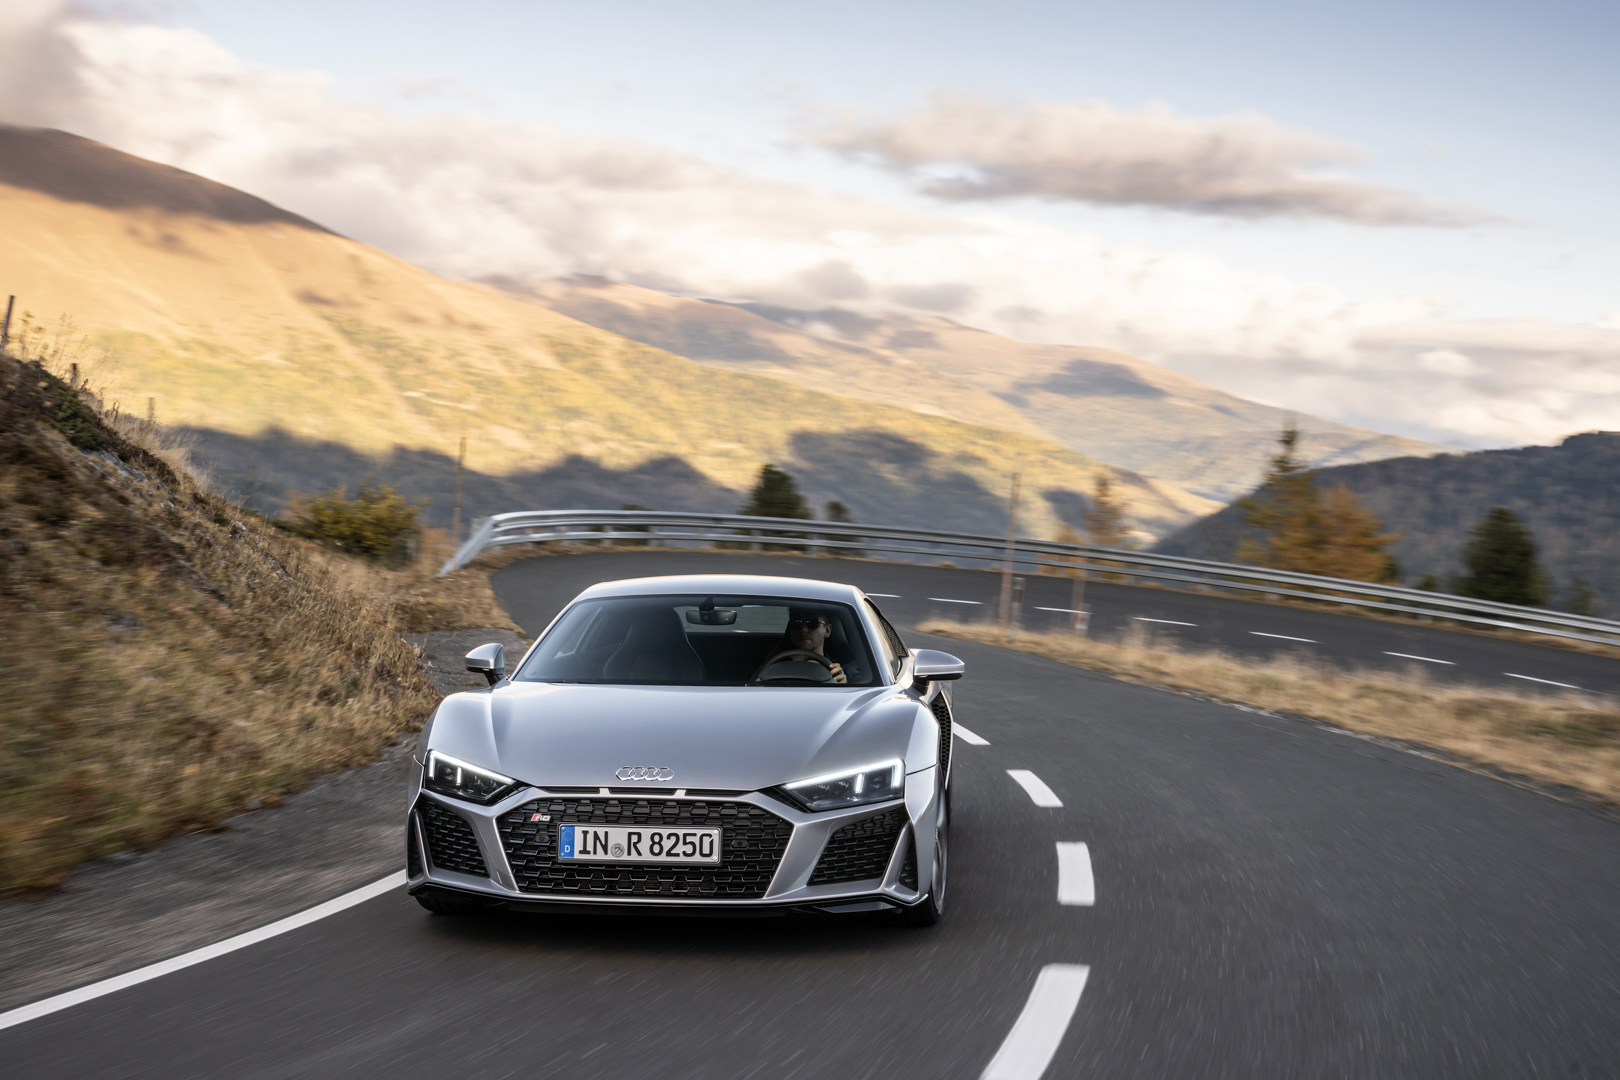 VIDEO: Fifth Gear says Goodbye to the Audi R8 V10 Engine